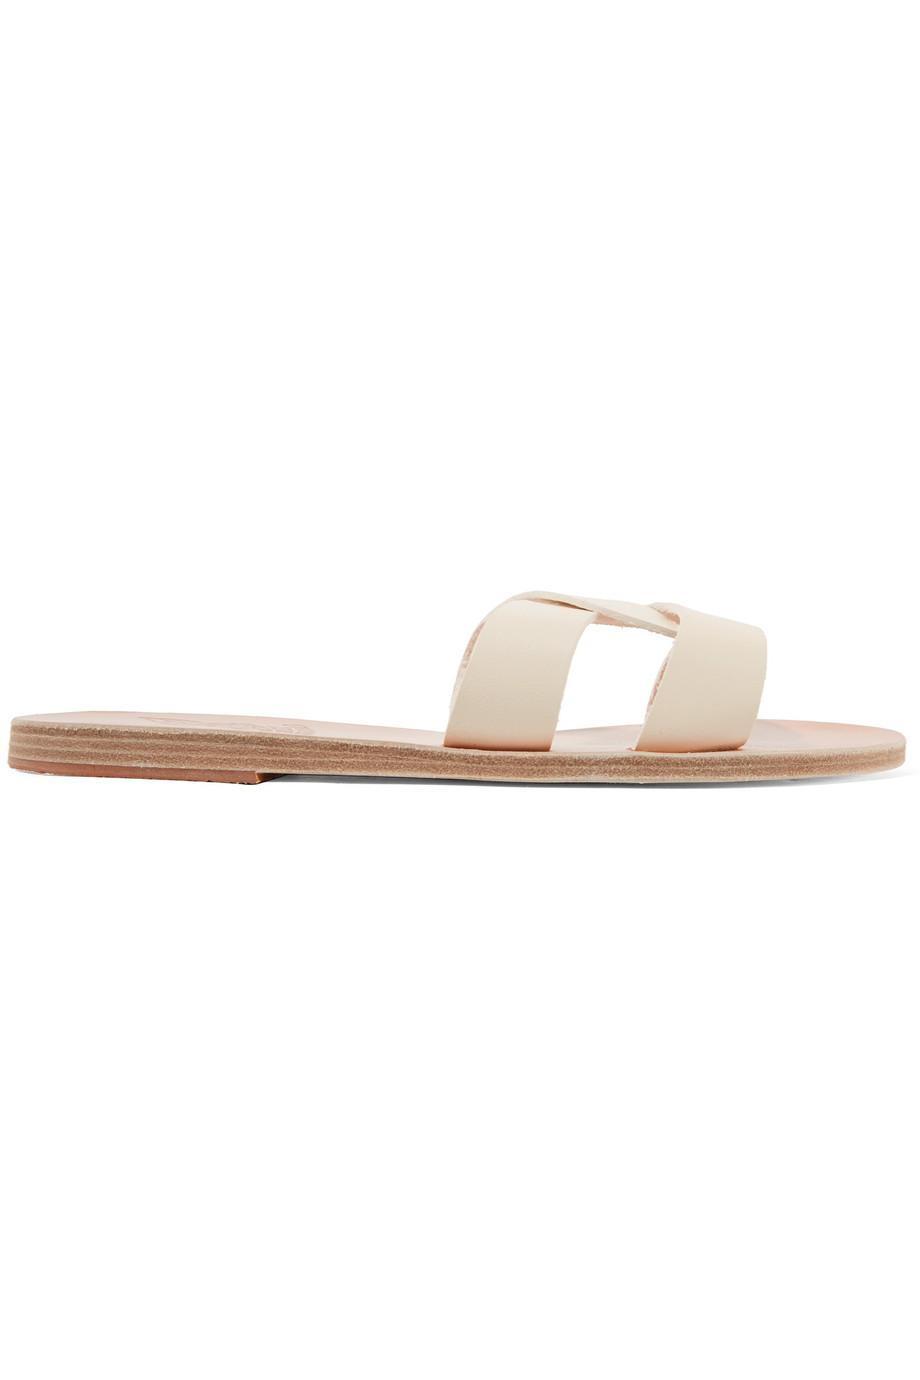 Desmos Cutout Metallic Leather Slides - Gold Ancient Greek Sandals bkv9Rth